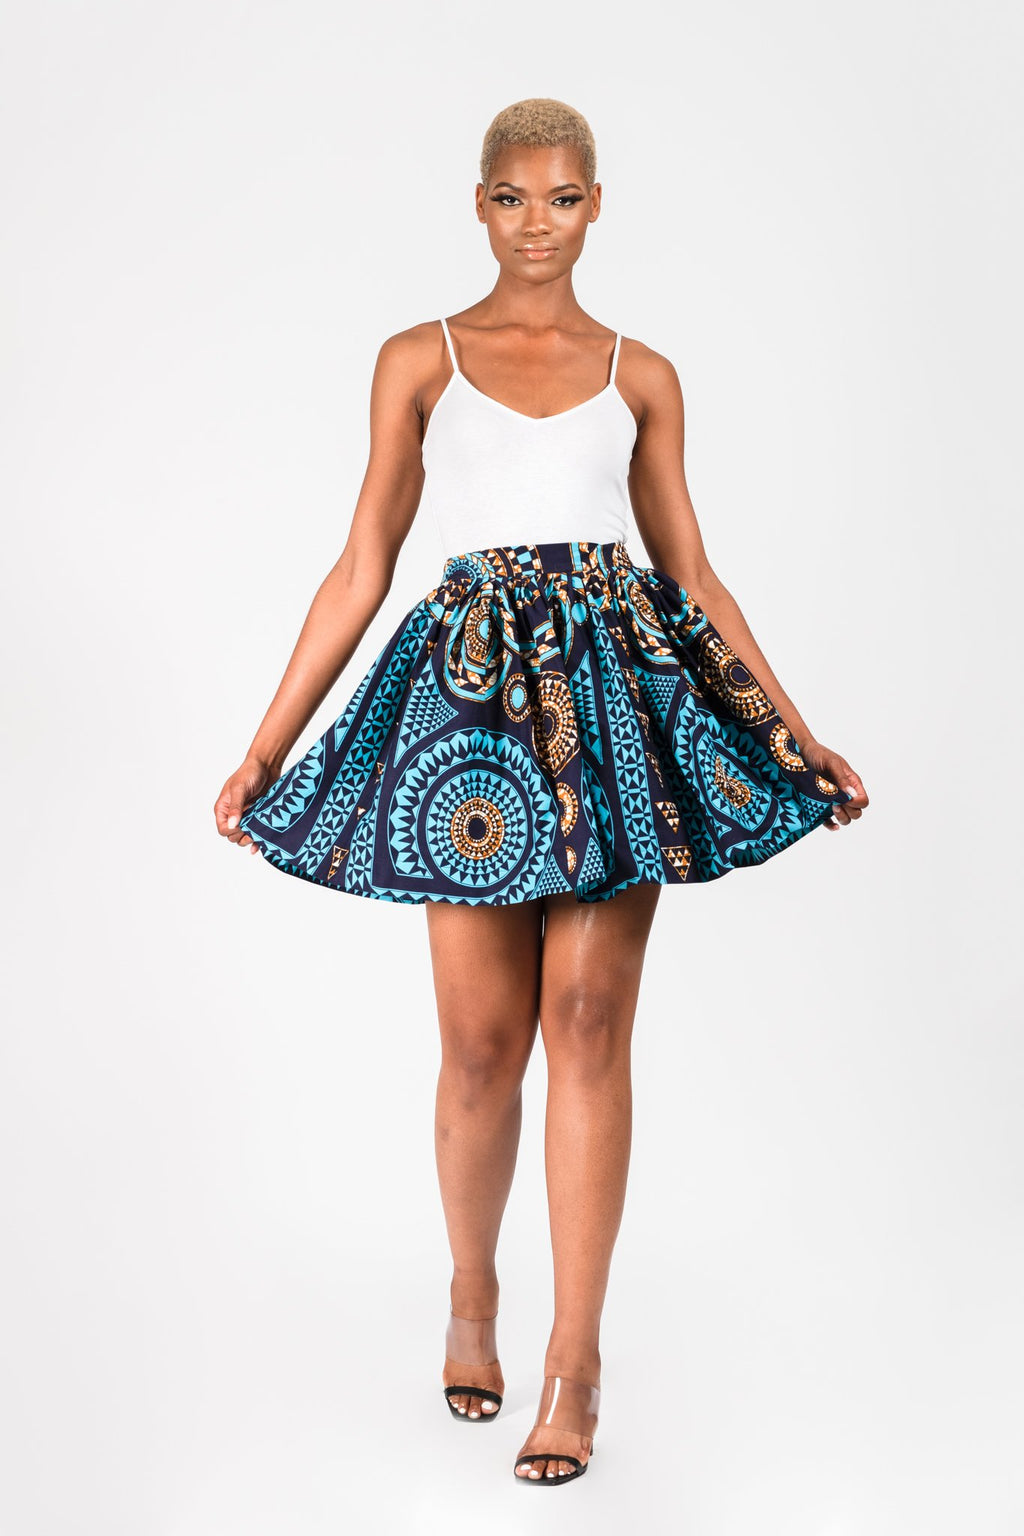 GBEMI AFRICAN PRINT ANKARA FLARED MINI SKIRT